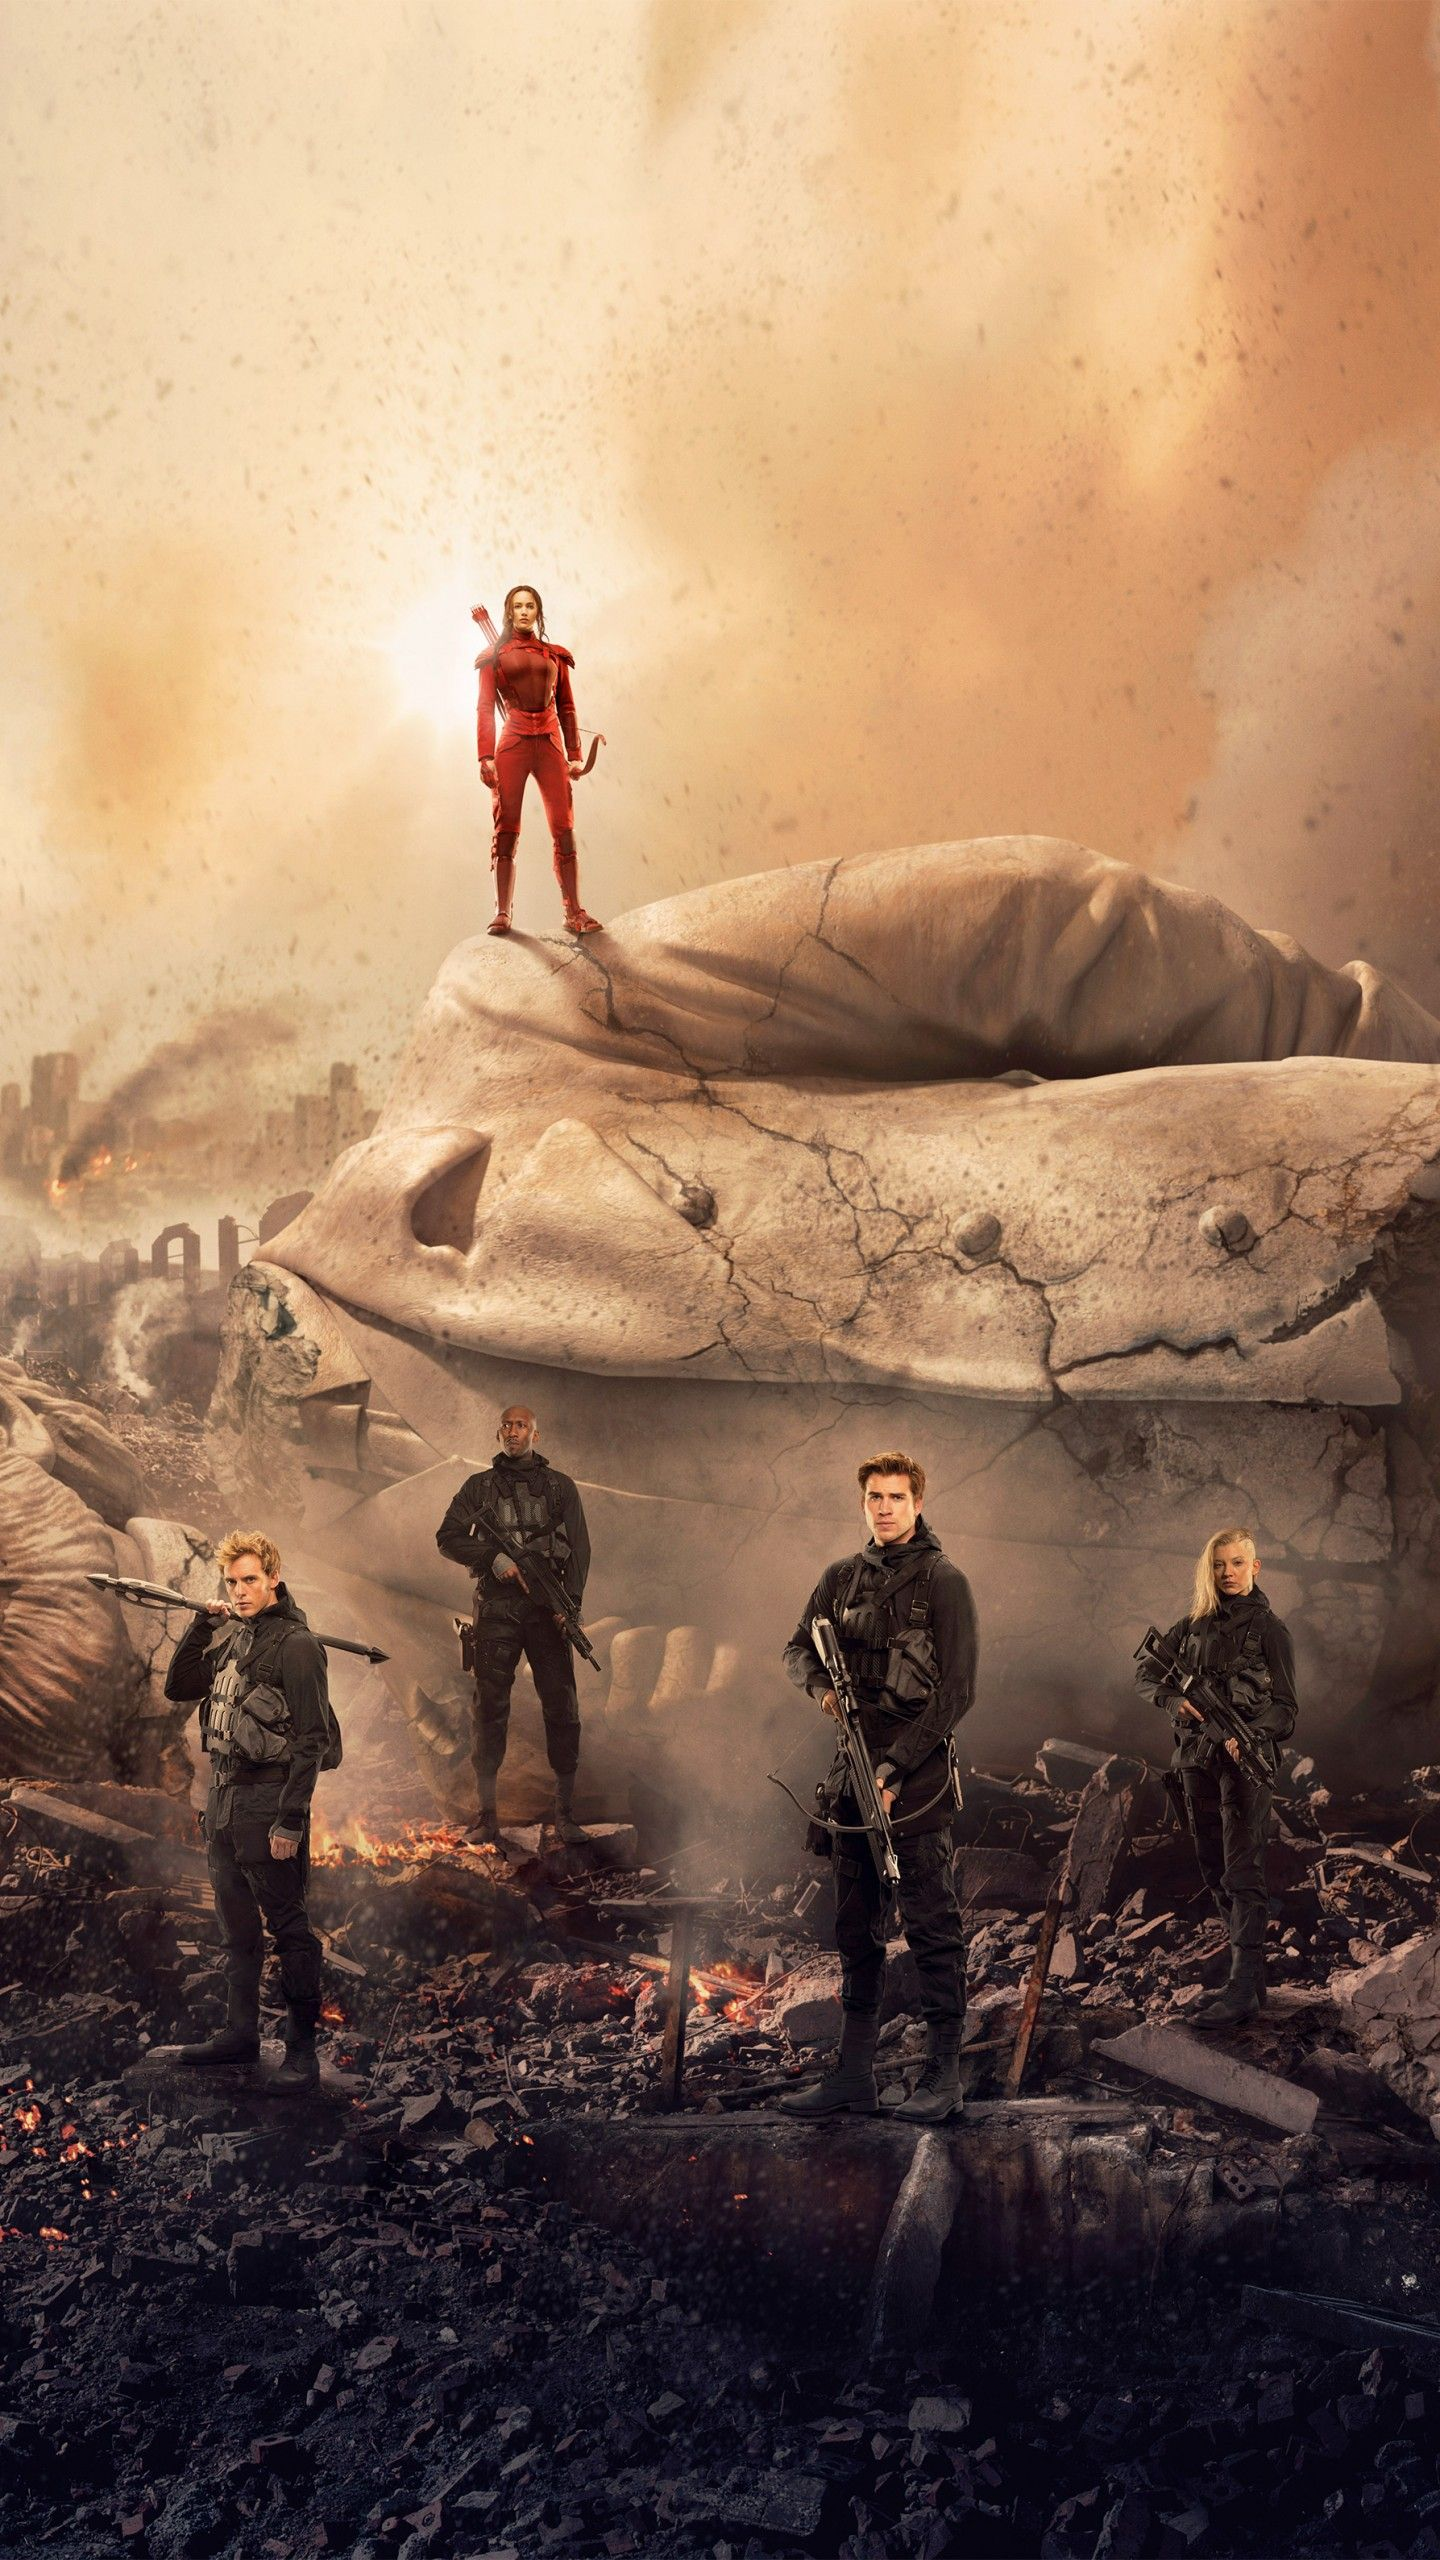 Hunger Games Soldiers Wallpapers - Wallpaper Cave